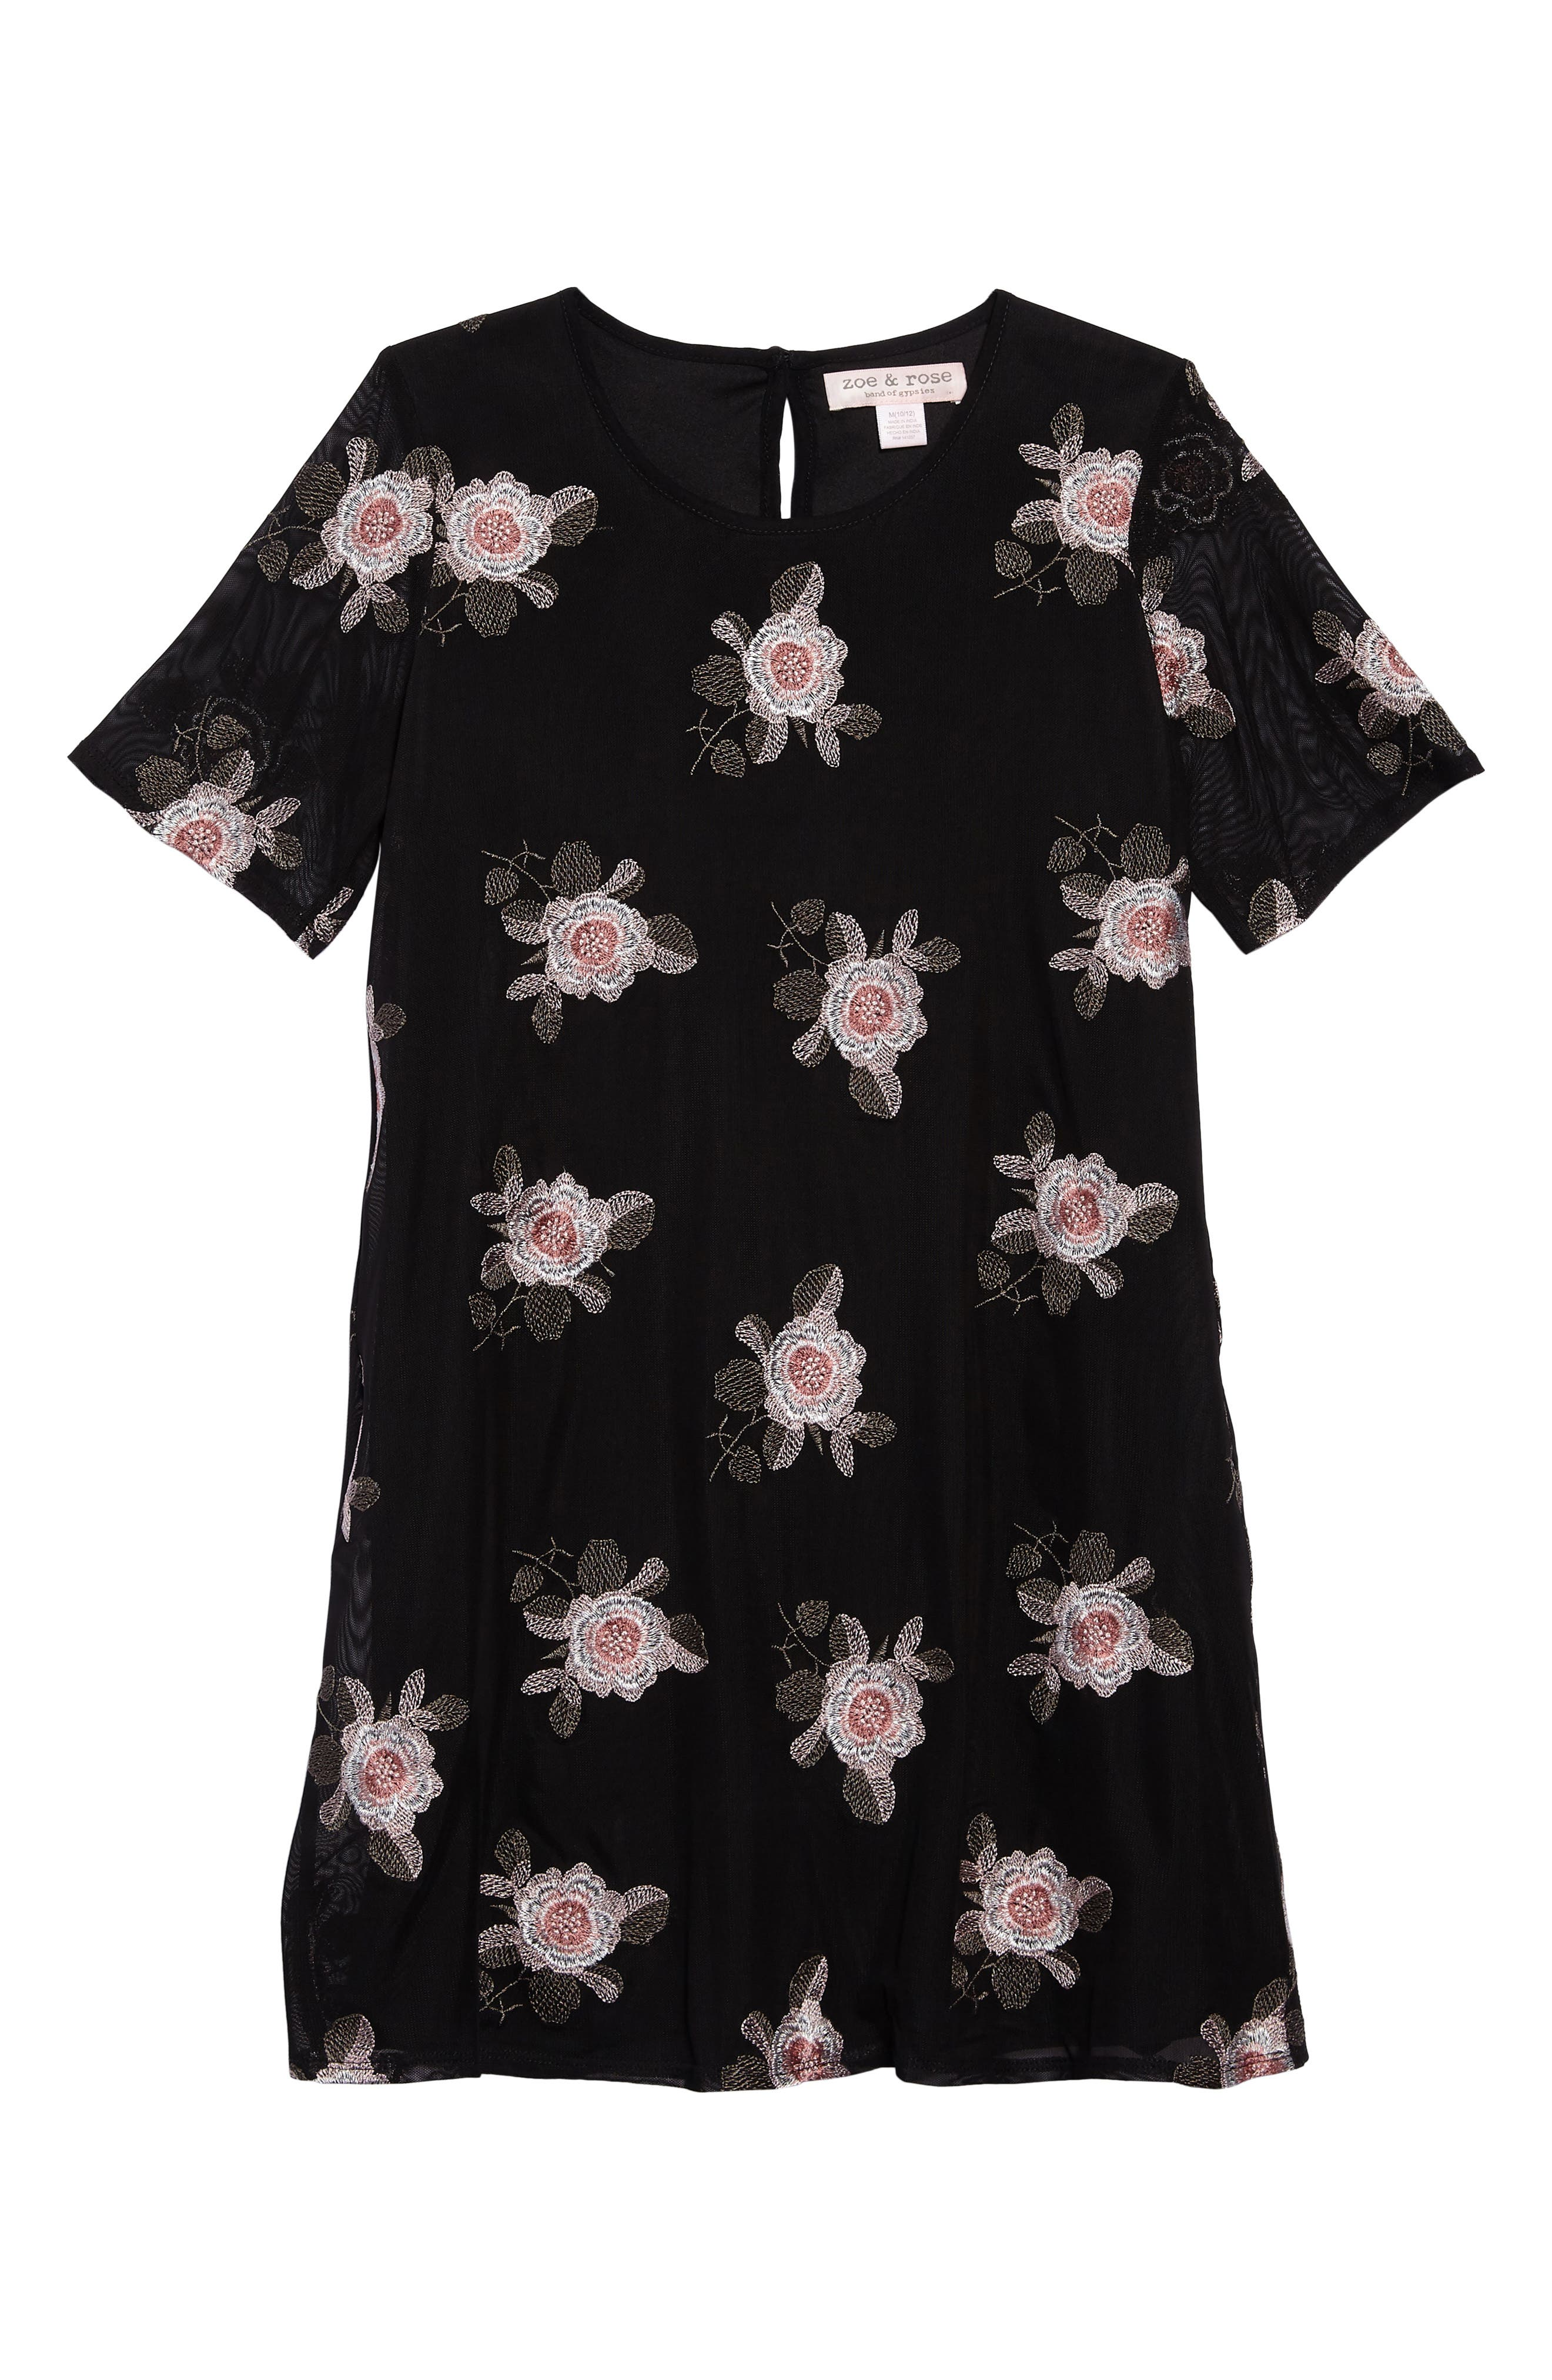 Main Image - Zoe and Rose Flower Embroidered Mesh Dress (Big Girls)